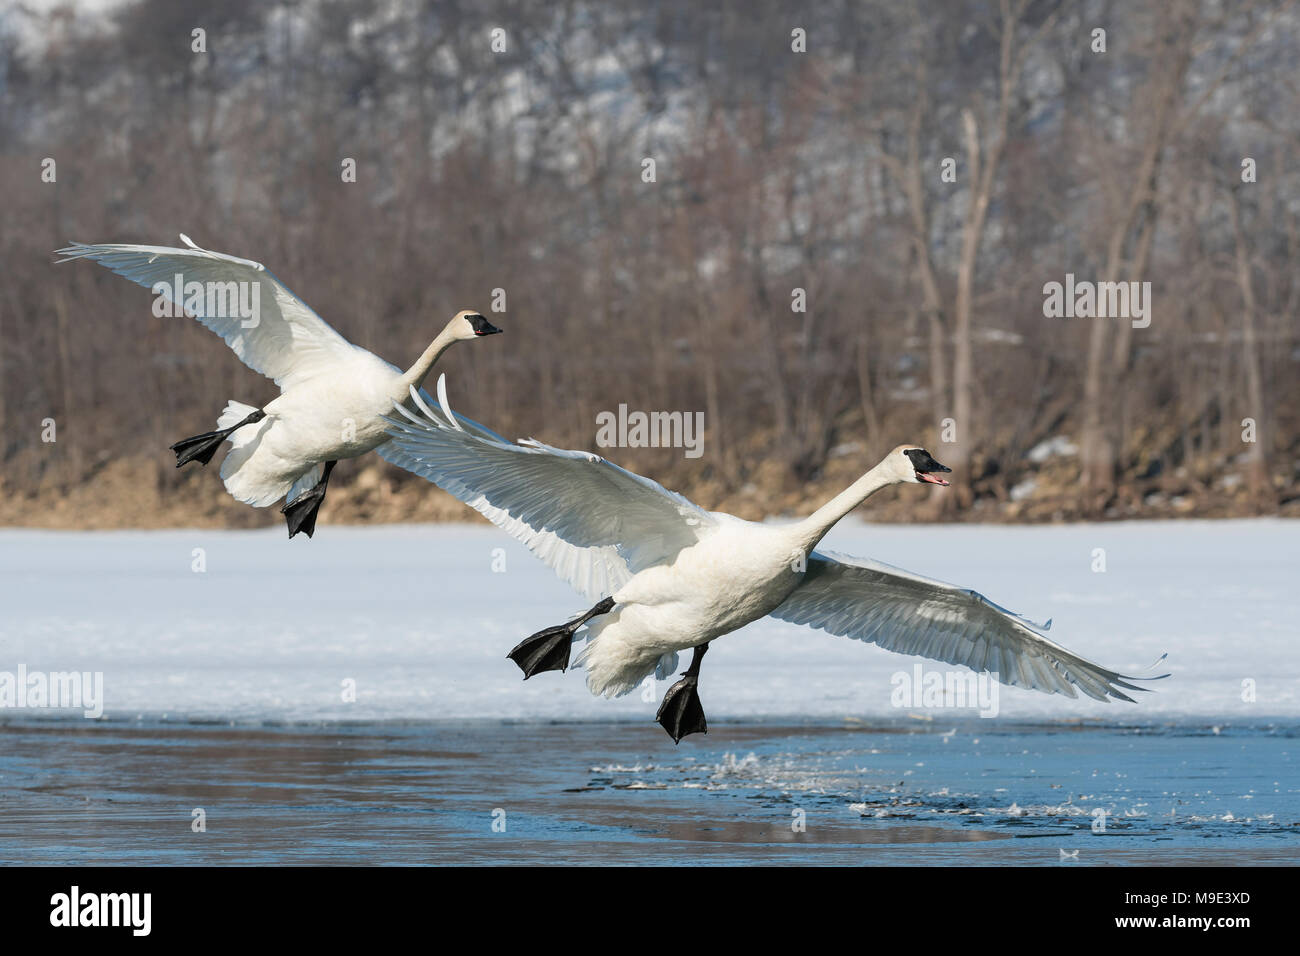 Trumpeter swans (Cygnus buccinator) landing on the St. Croix river, WI, USA, mid-March, by Dominique Braud/Dembinsky Photo Assoc - Stock Image